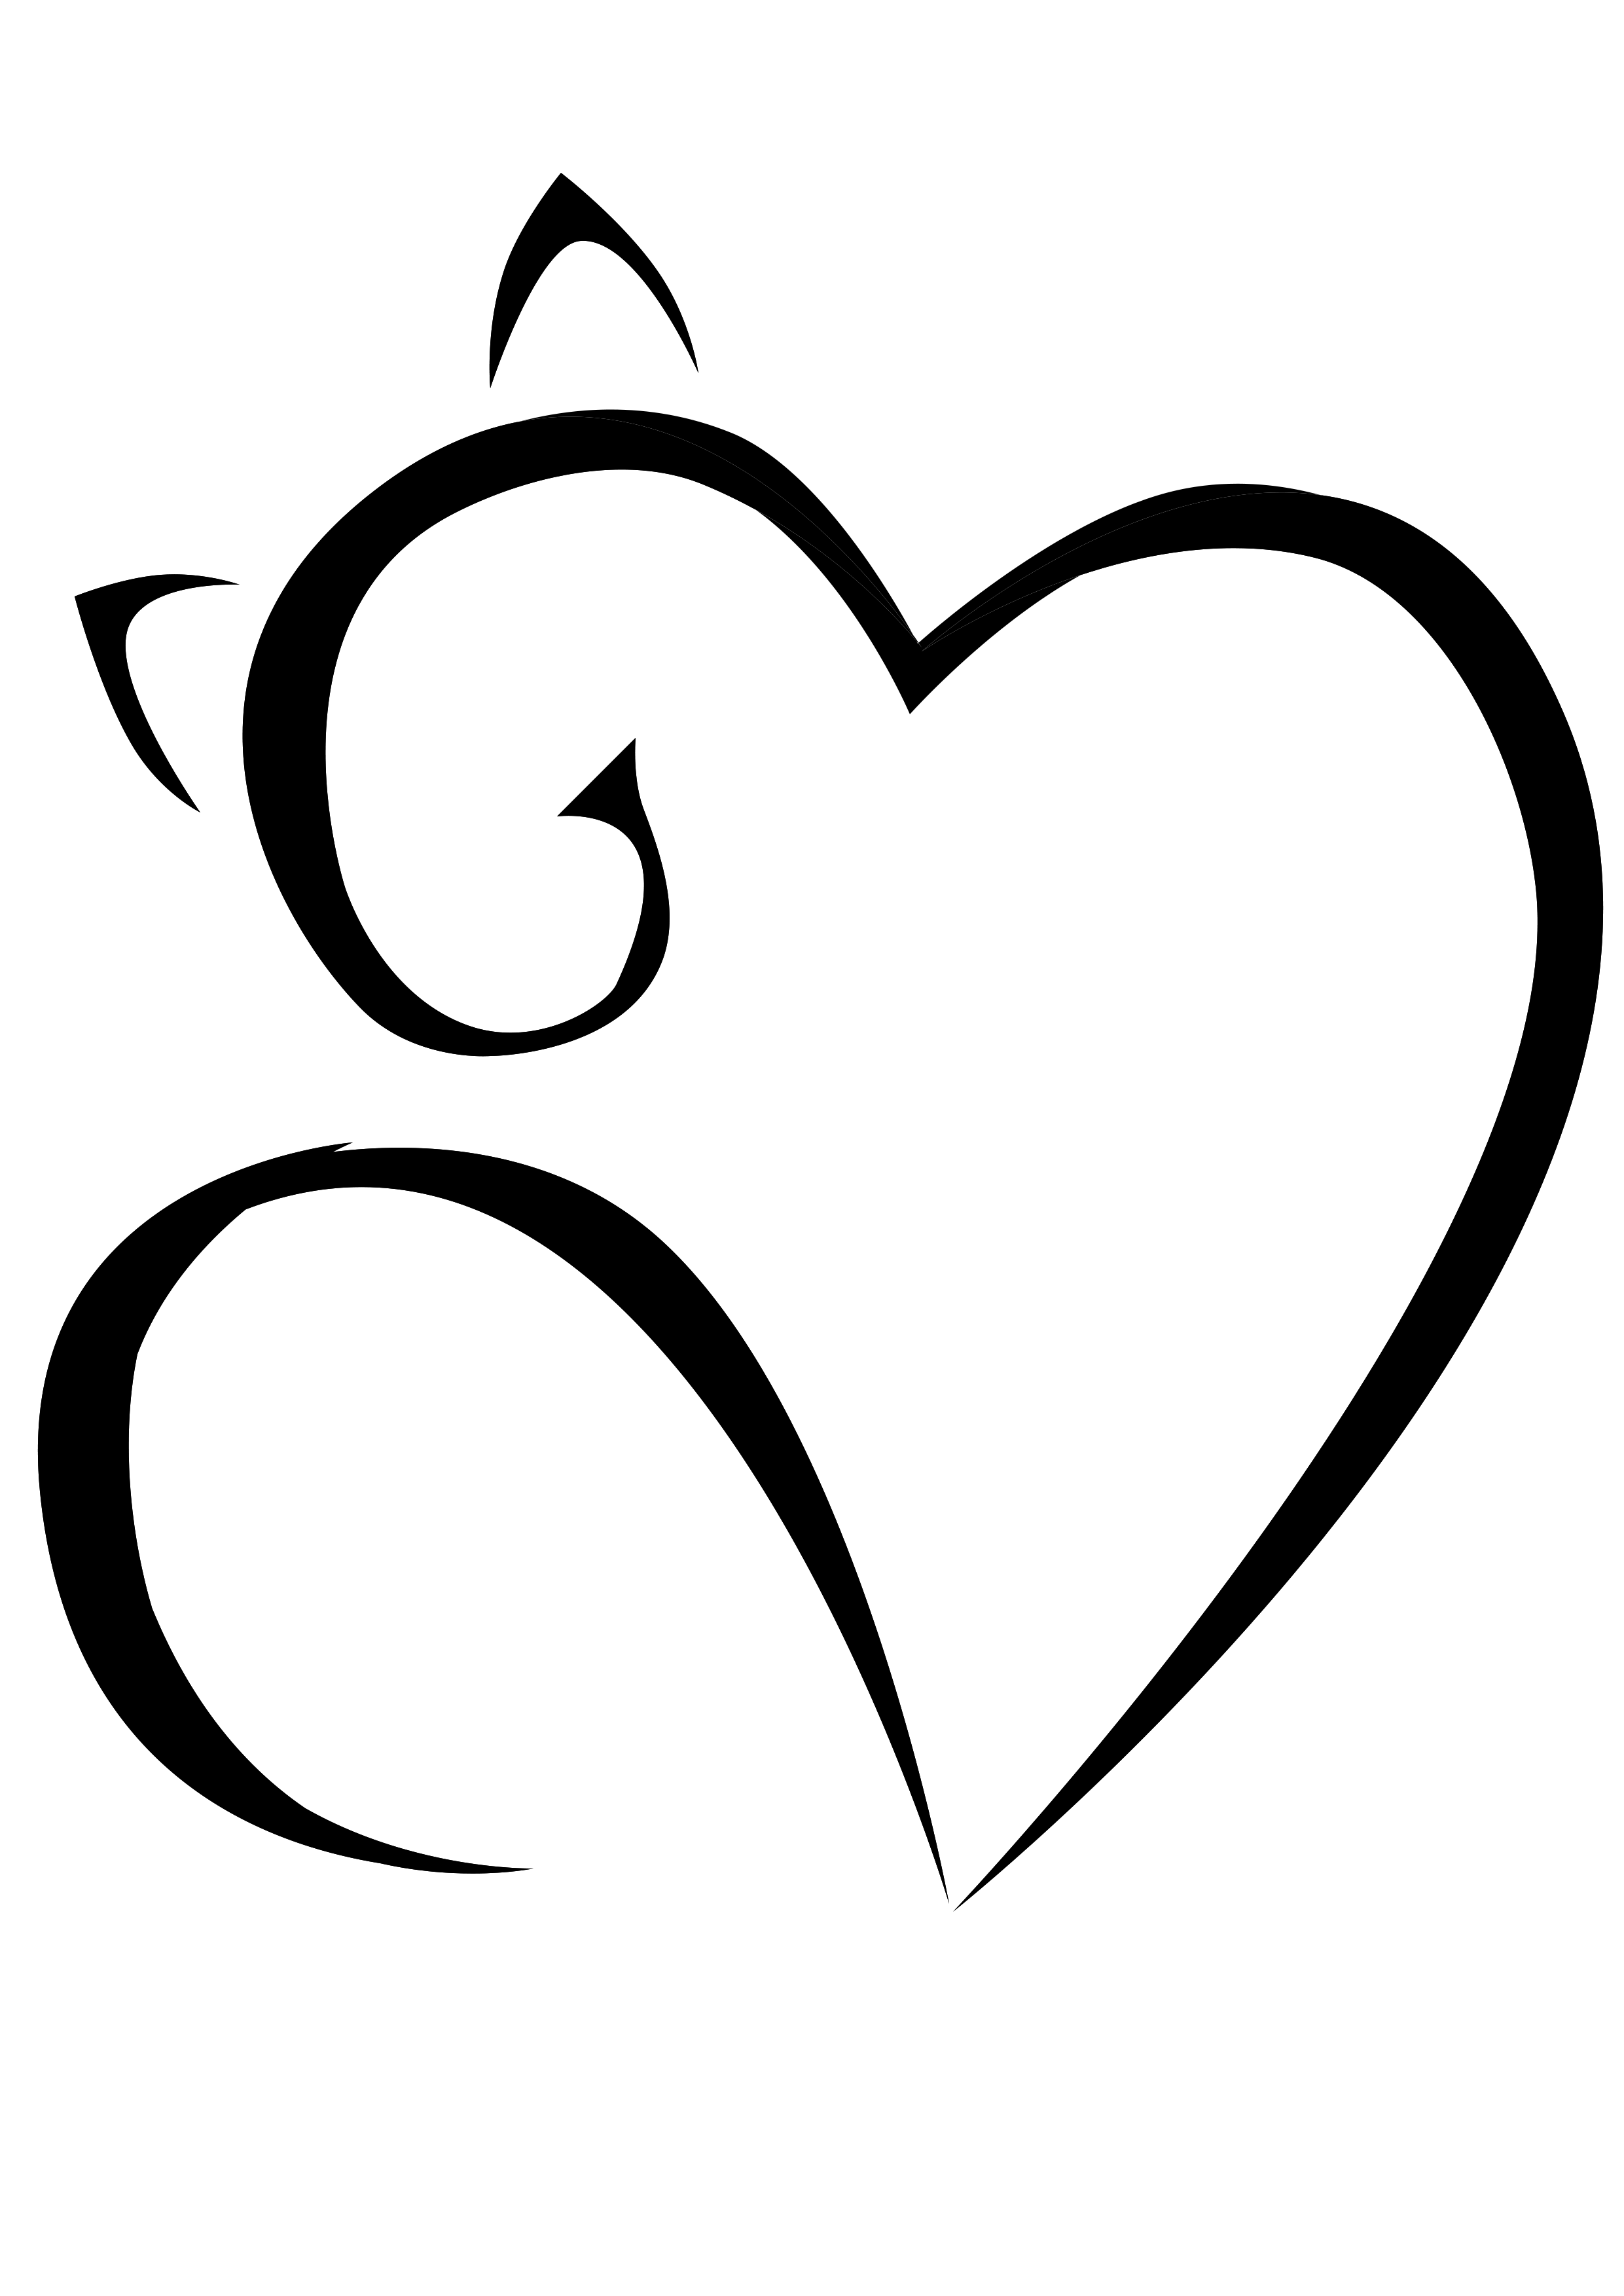 2481x3507 Stethoscope Drawing Love Heart For Free Download